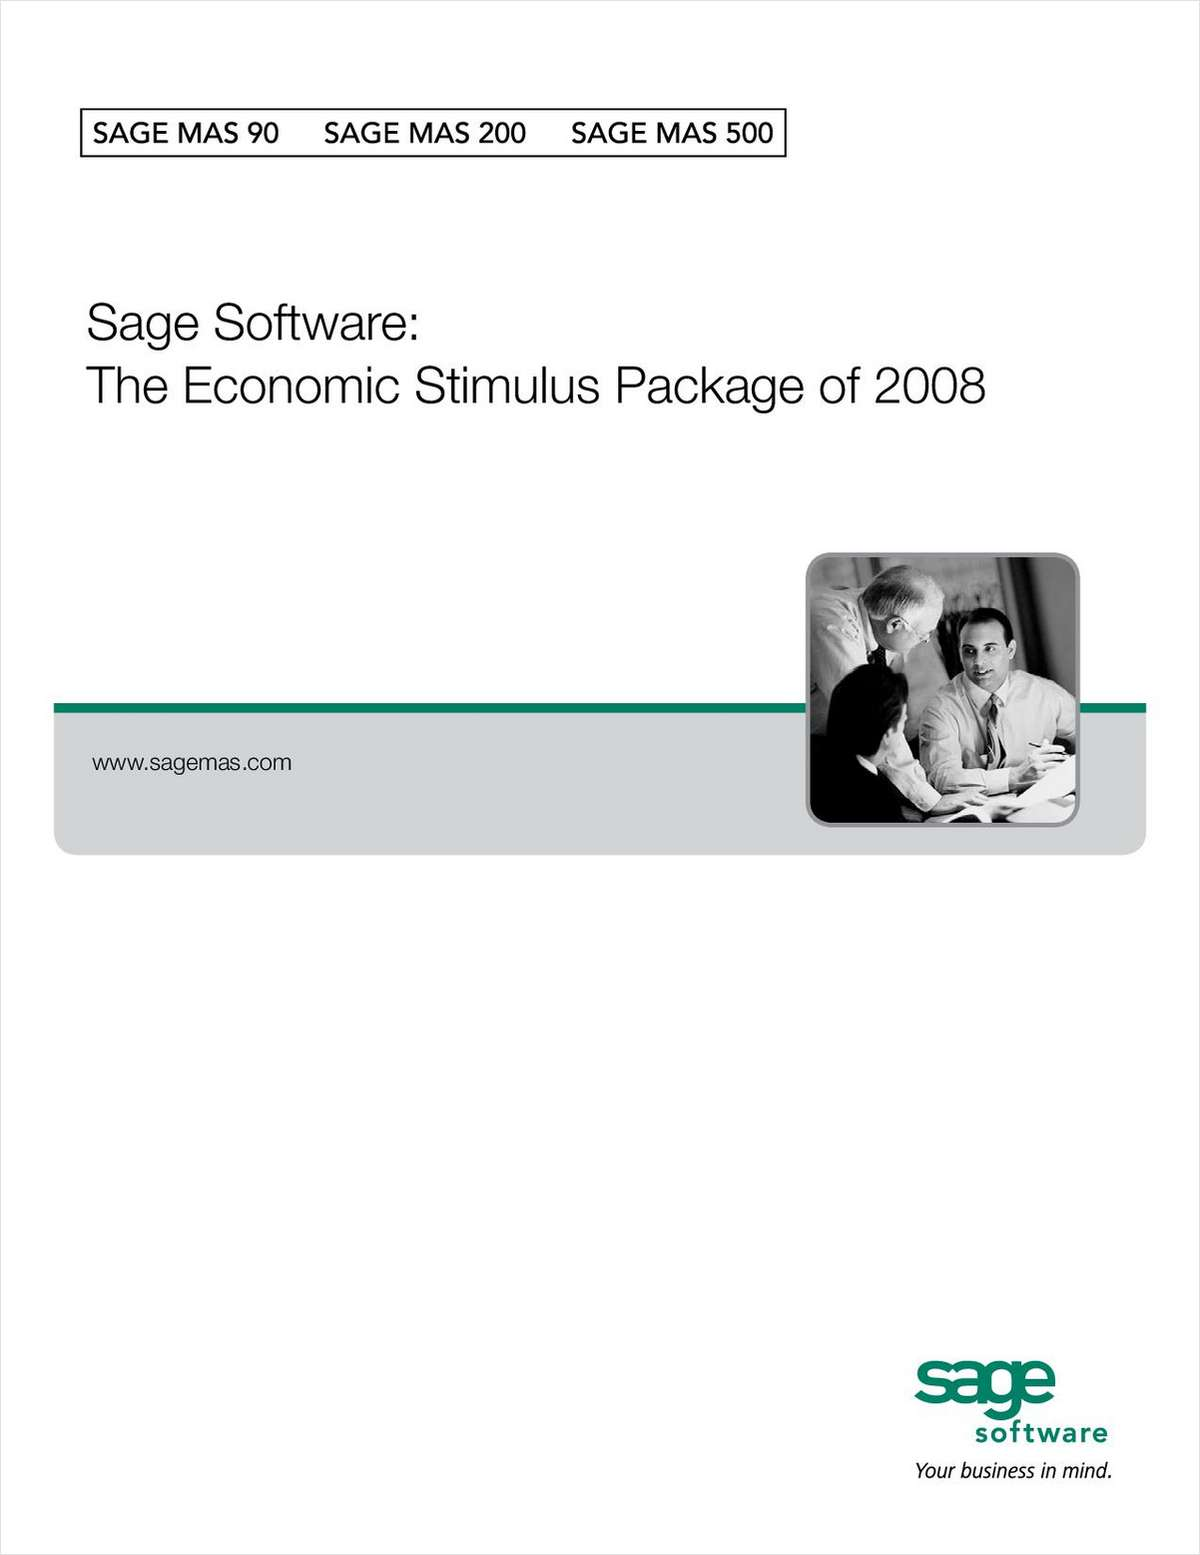 Sage Software: The Economic Stimulus Package of 2008